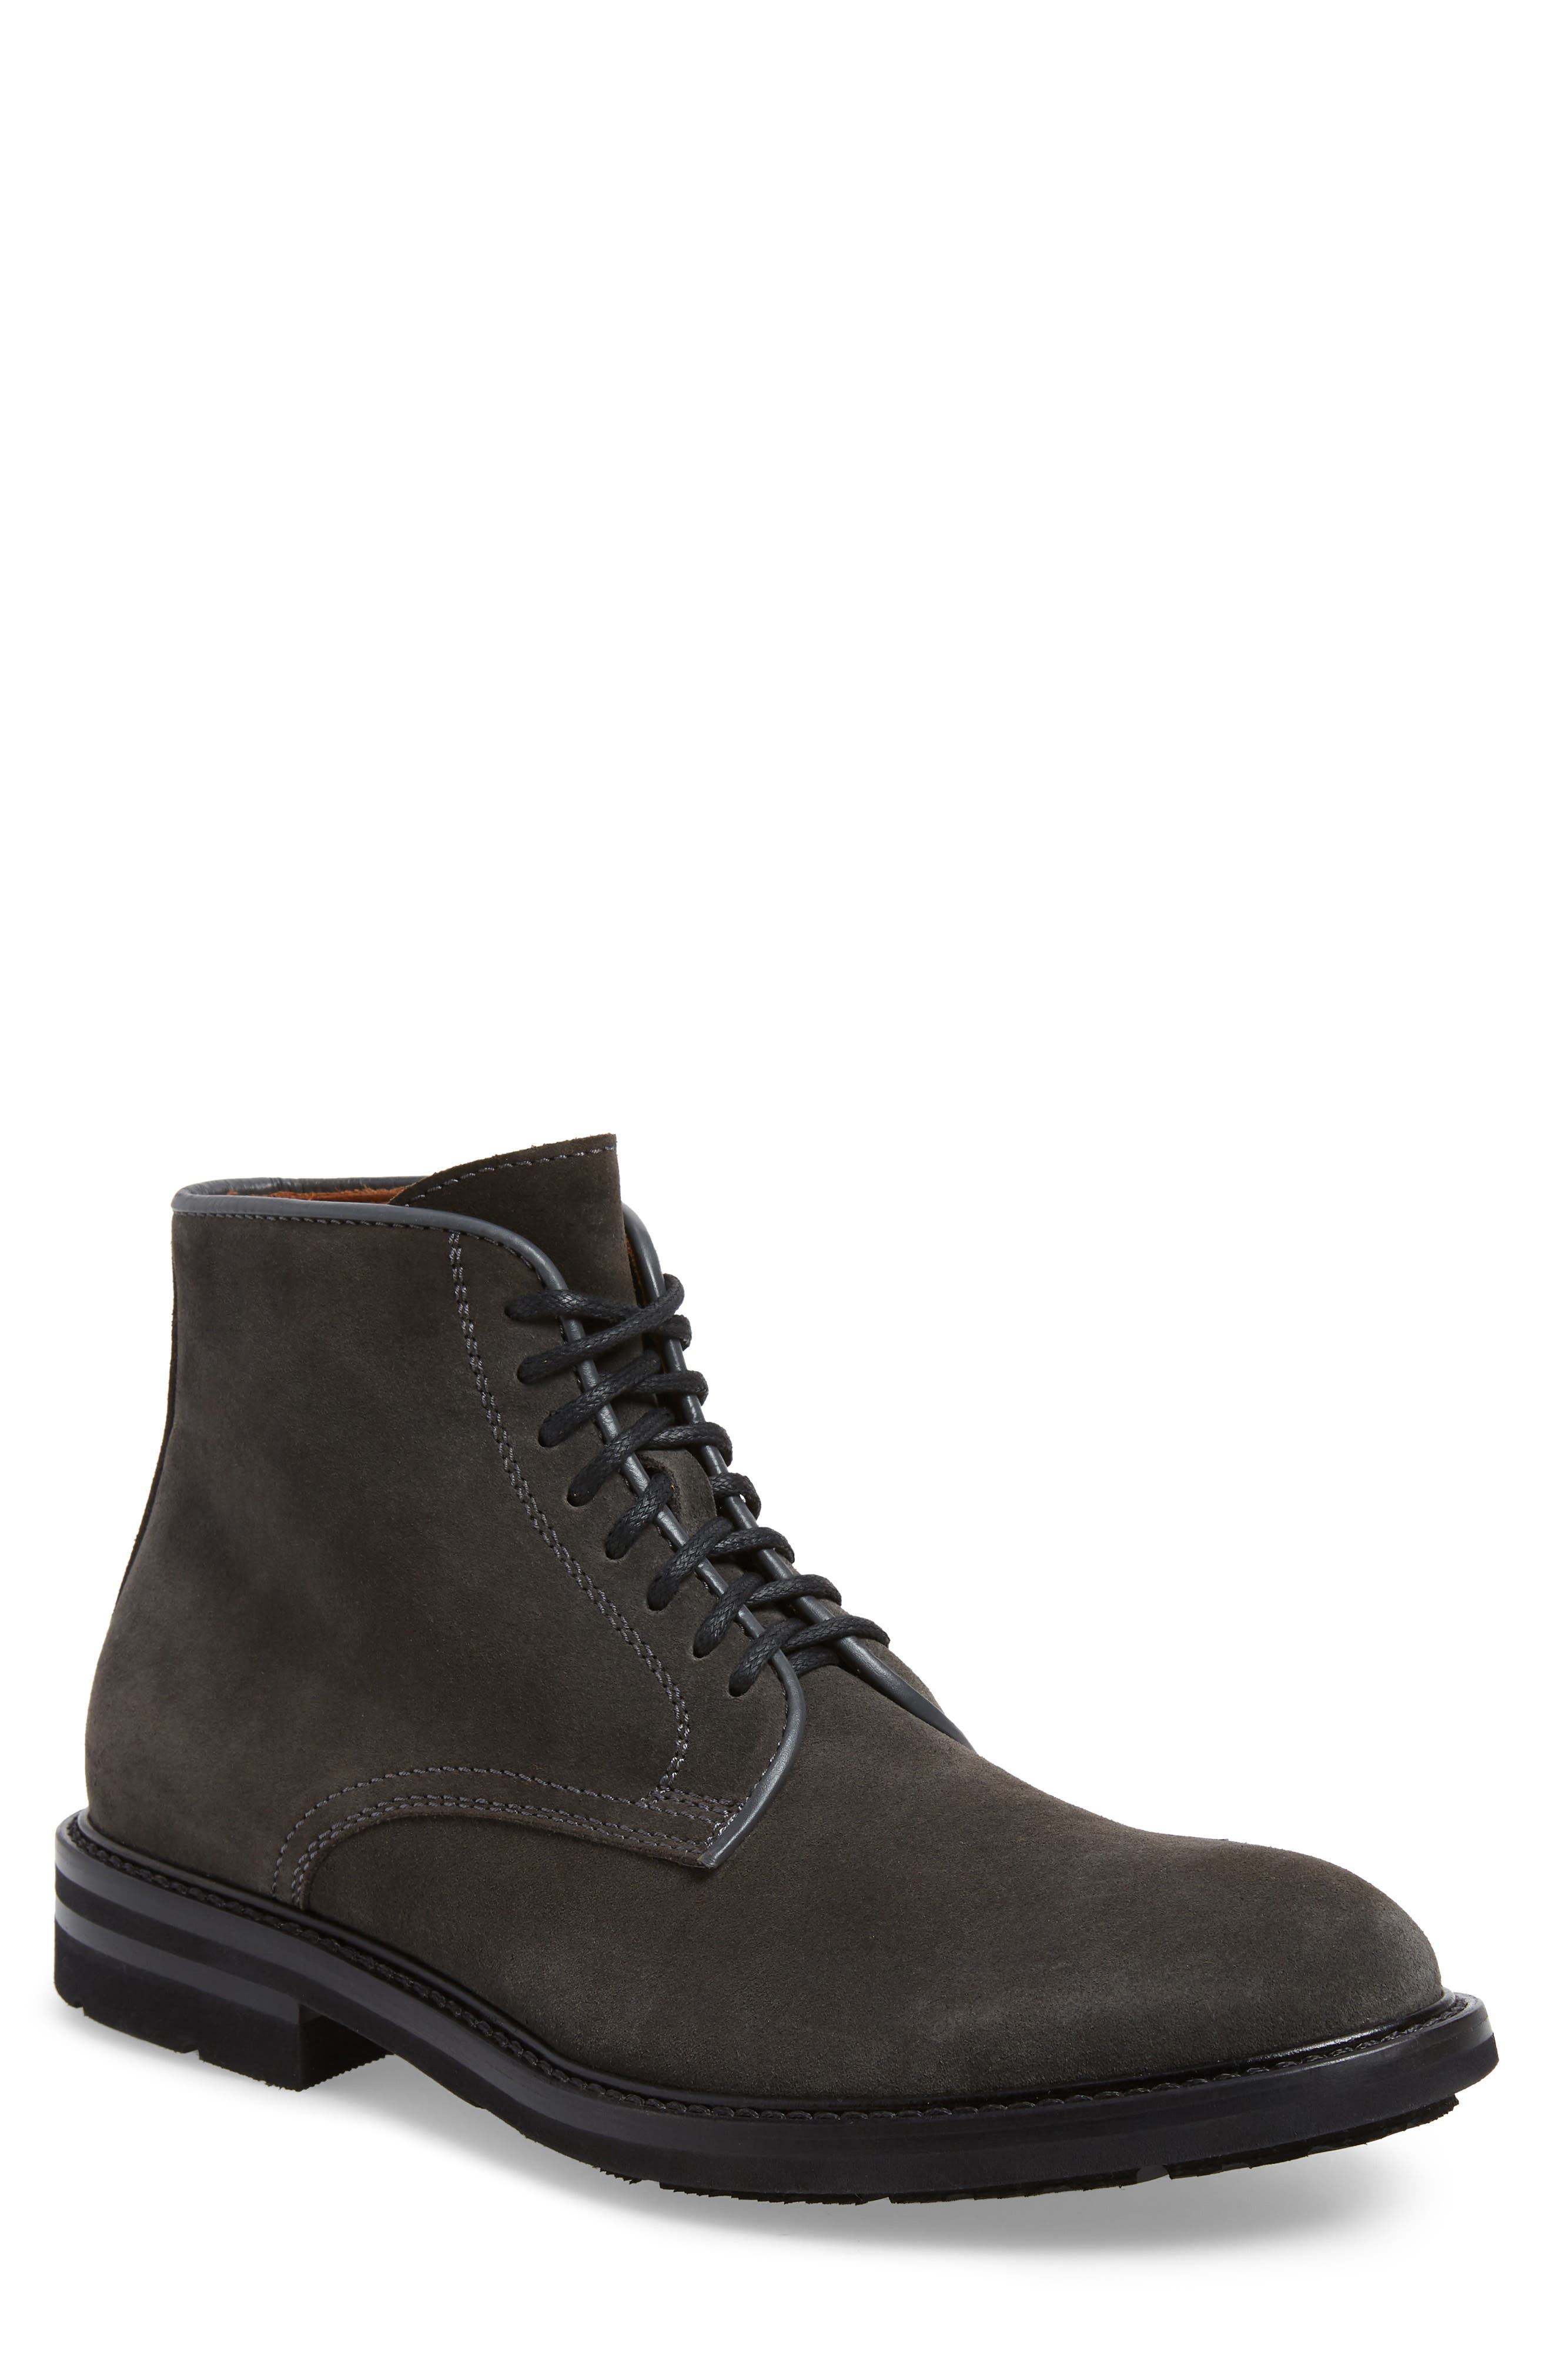 AQUATALIA Renzo Weatherproof Lace-Up Boot, Main, color, DARK CHARCOAL